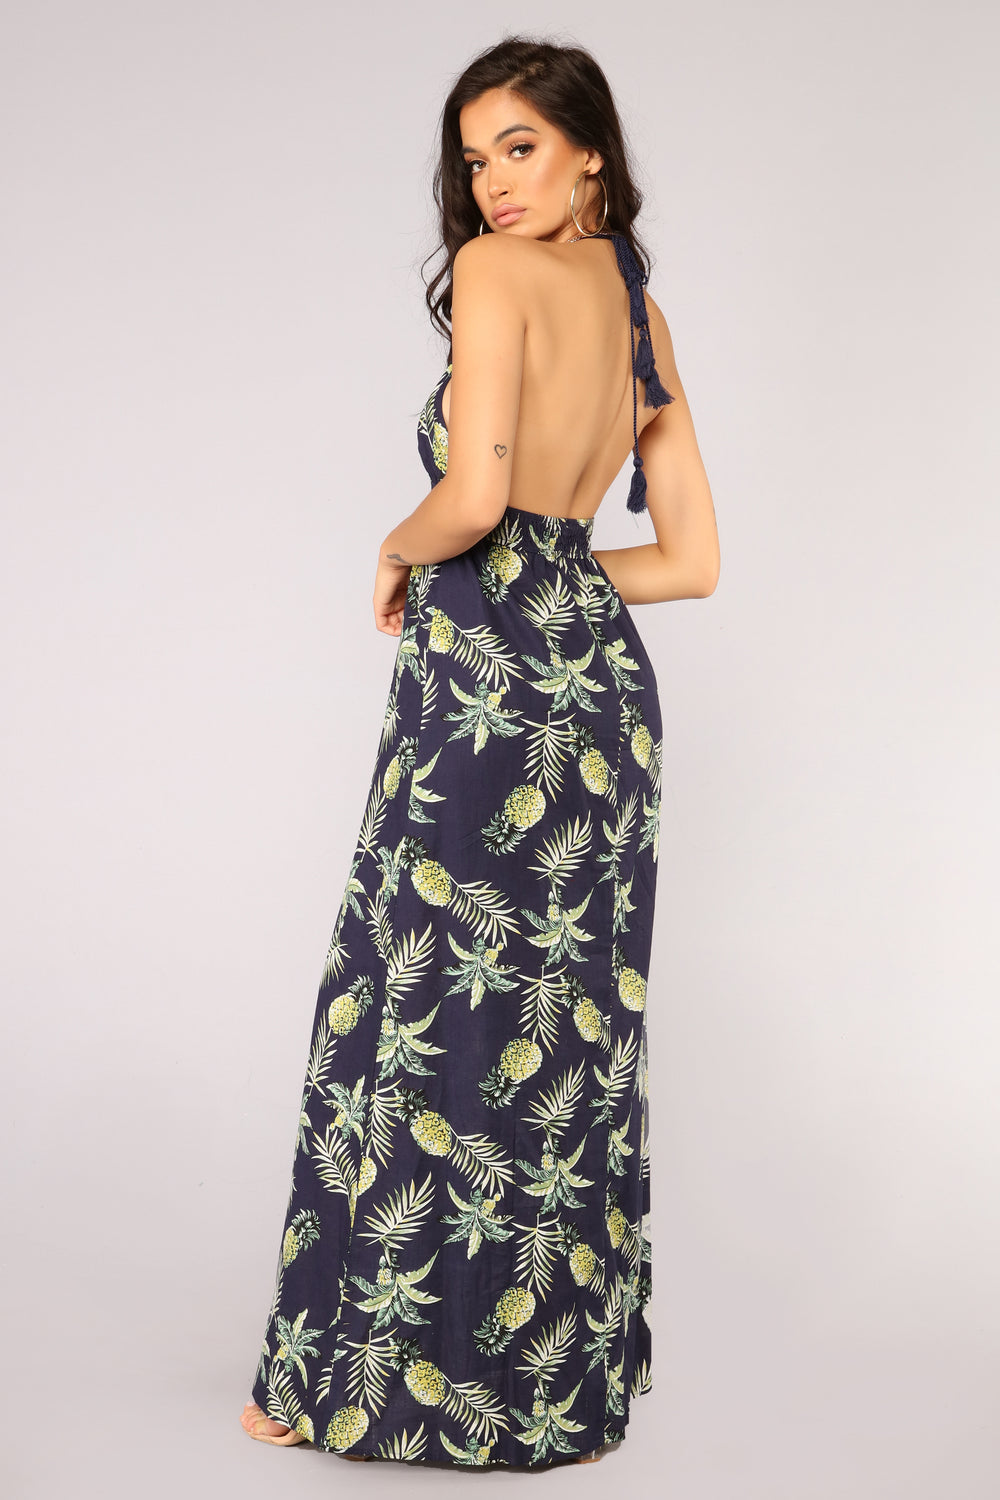 Pineapple Skies Maxi Dress - Navy